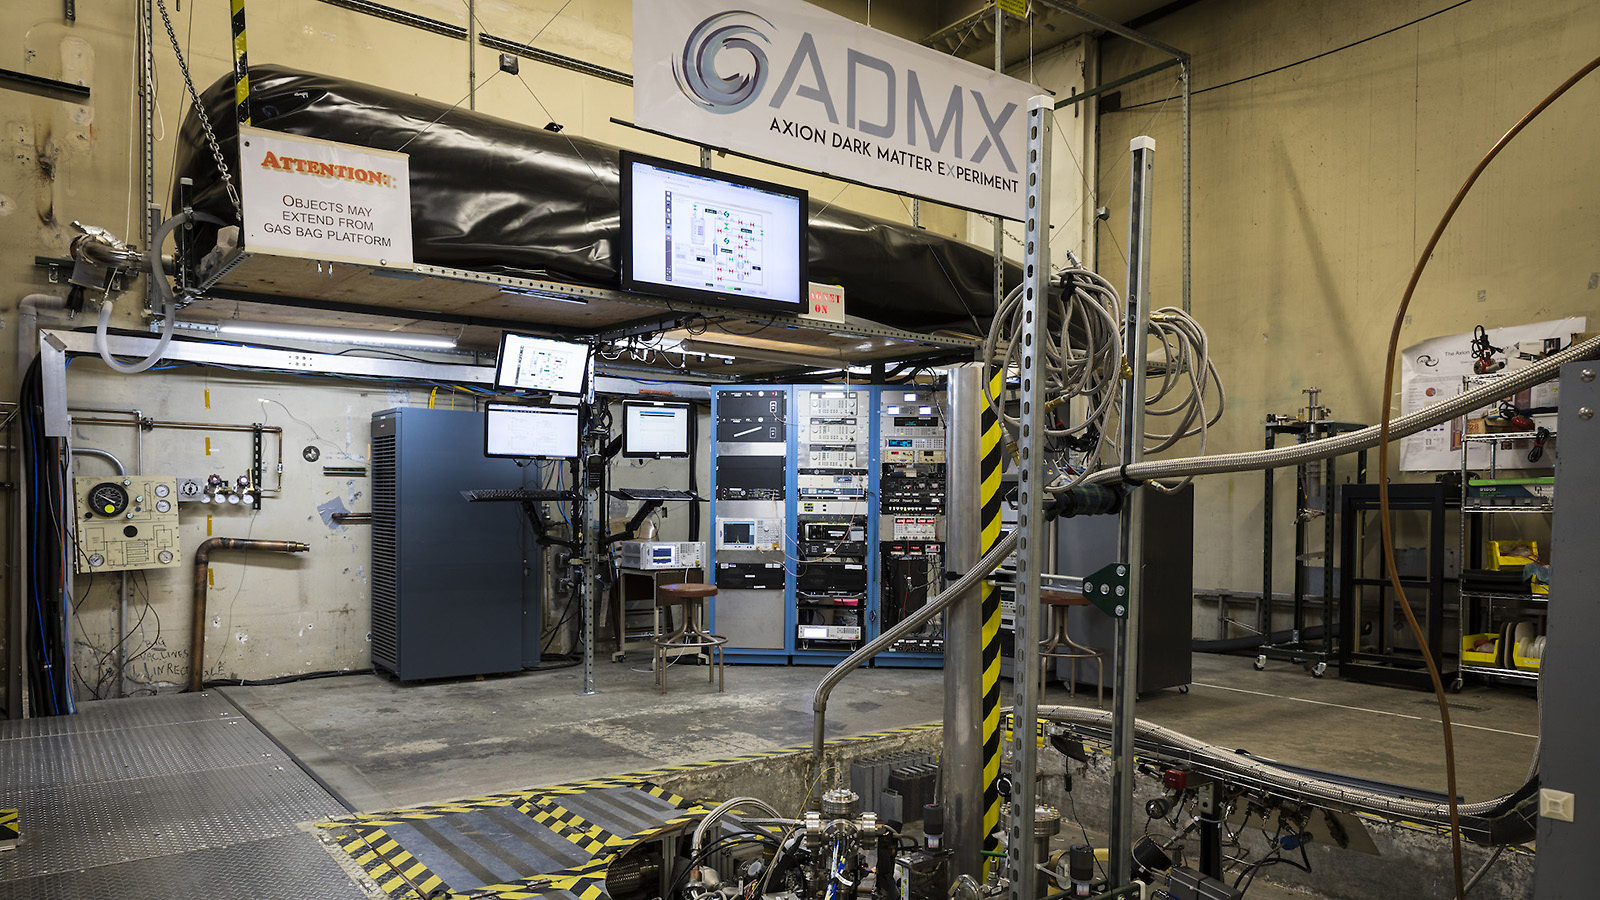 Photo of equipment and panels for the ADMX experiment fill the room: an ADMX experiment banner hangs above